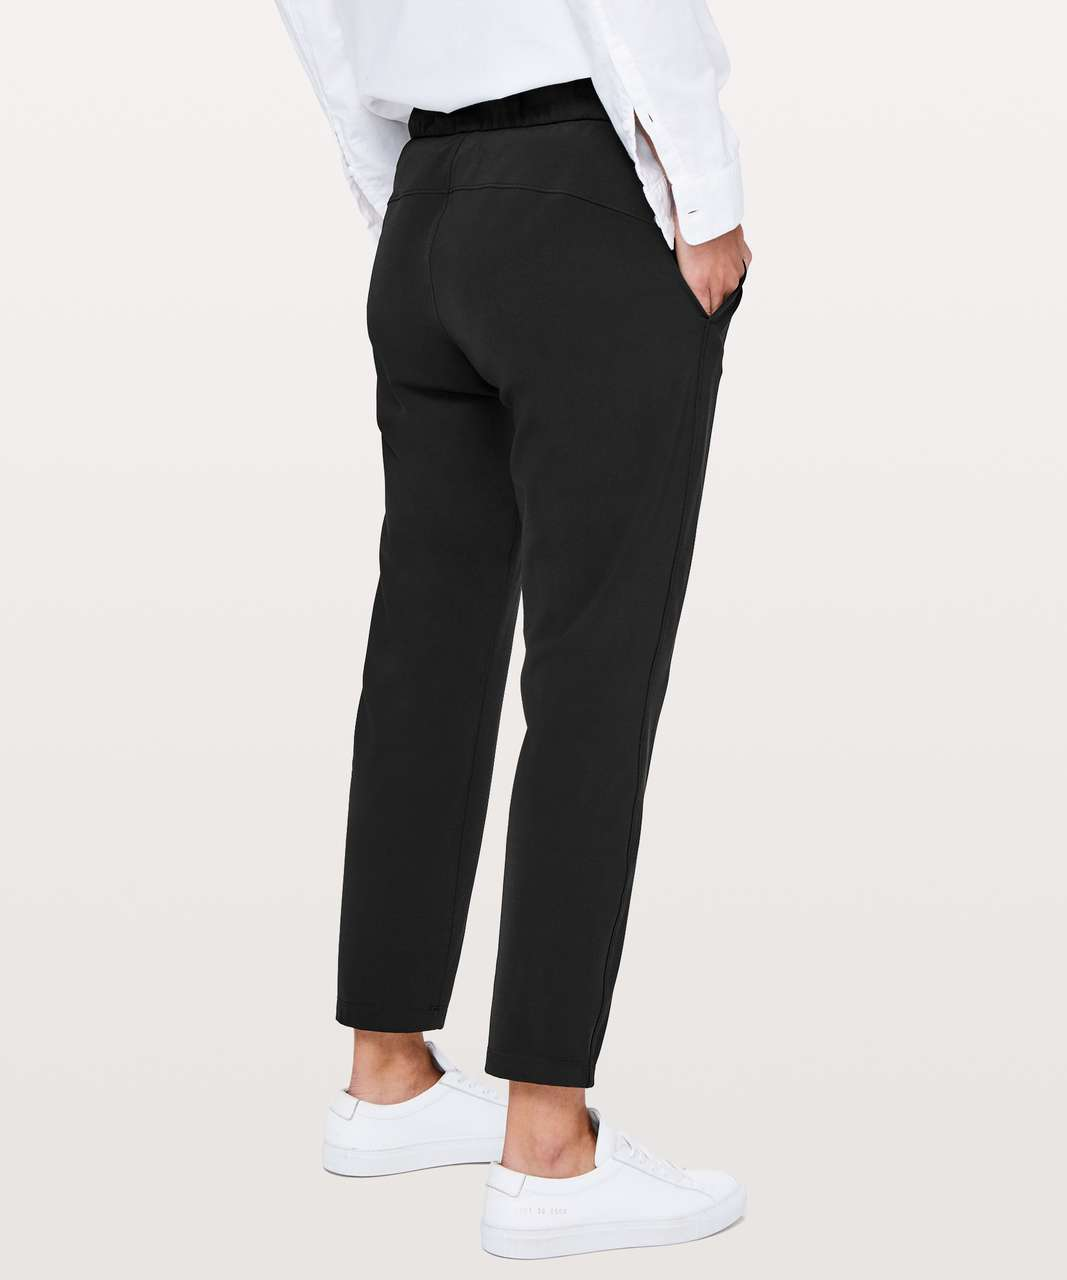 "Lululemon On The Fly Pant *28"" - Black"